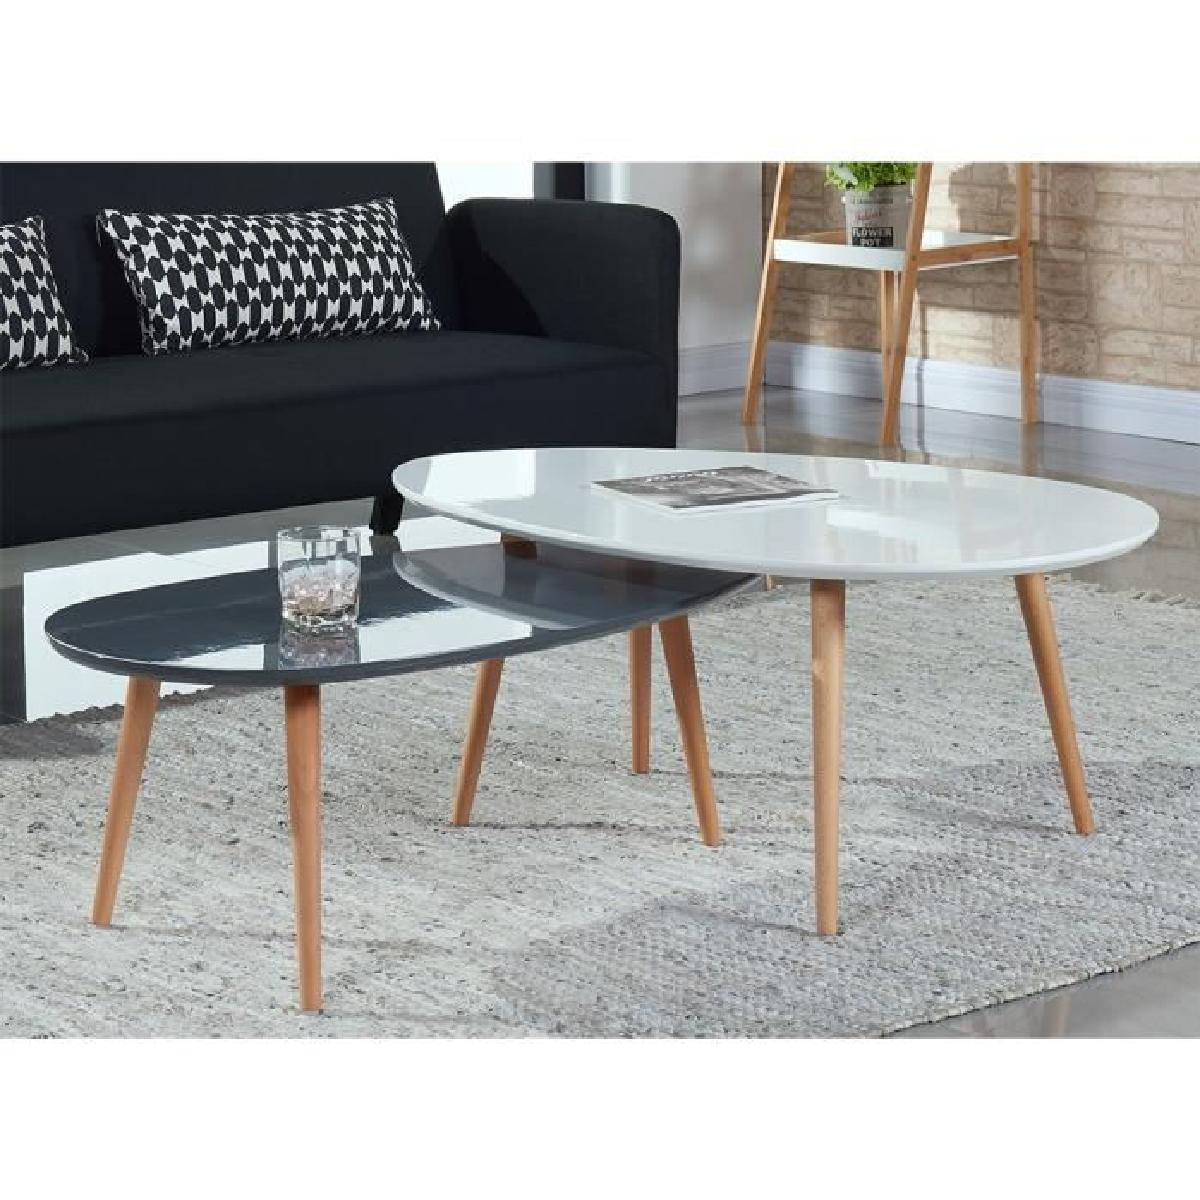 table salon modern table de salon table basse stone lot de 2 tables yprdlpz